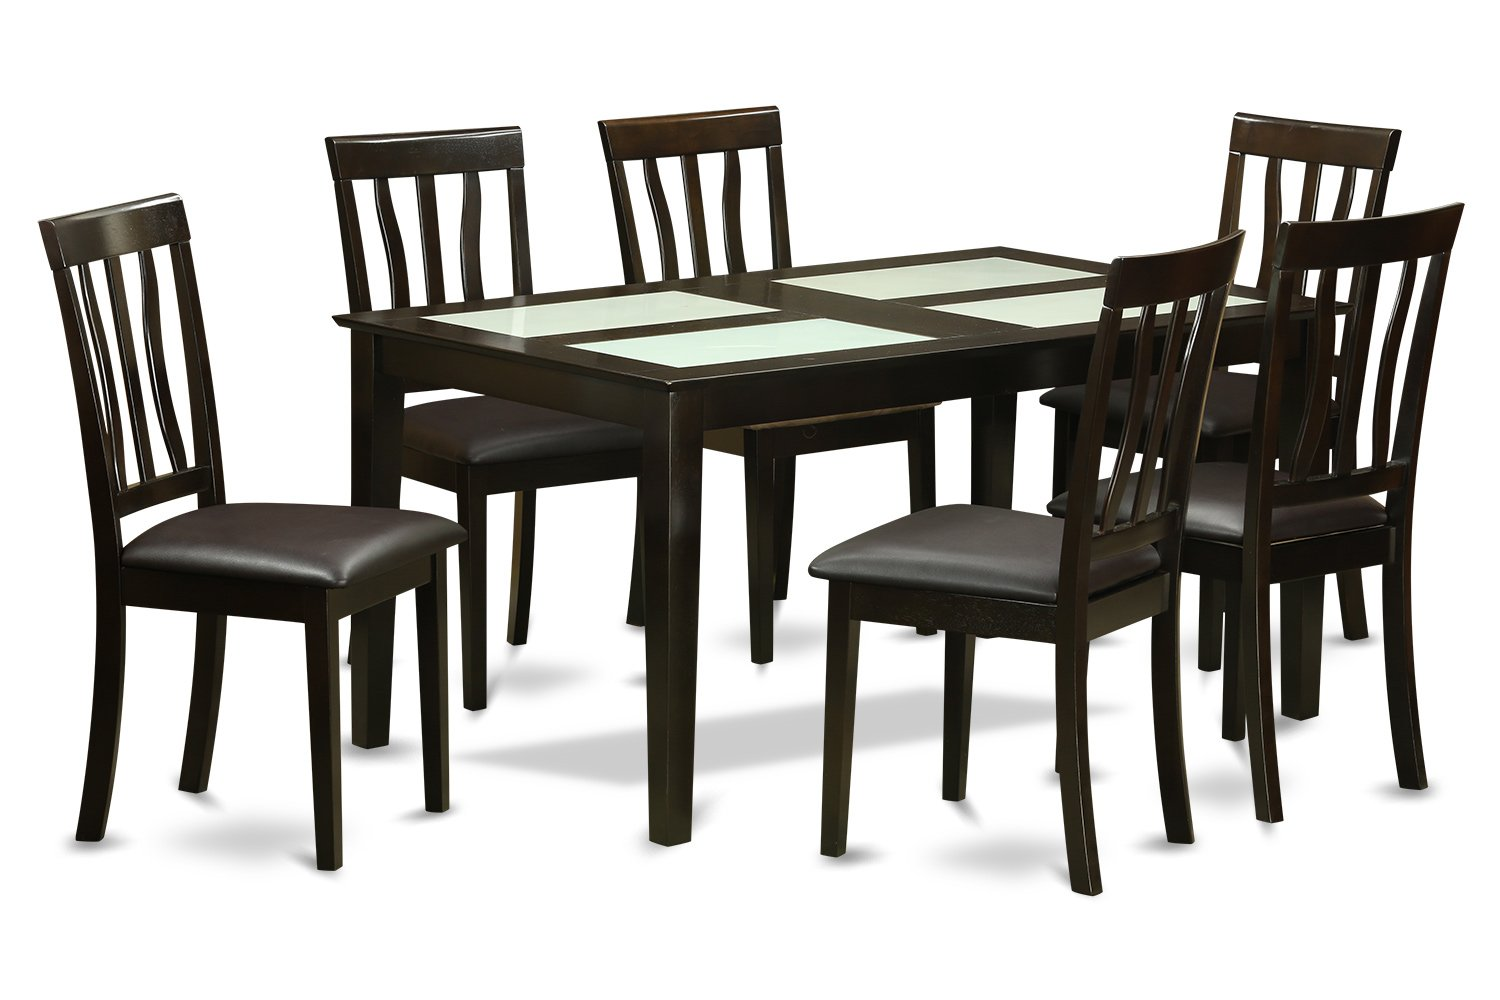 East West Furniture CAAN7G-CAP-LC 7-Piece Dining Table Set